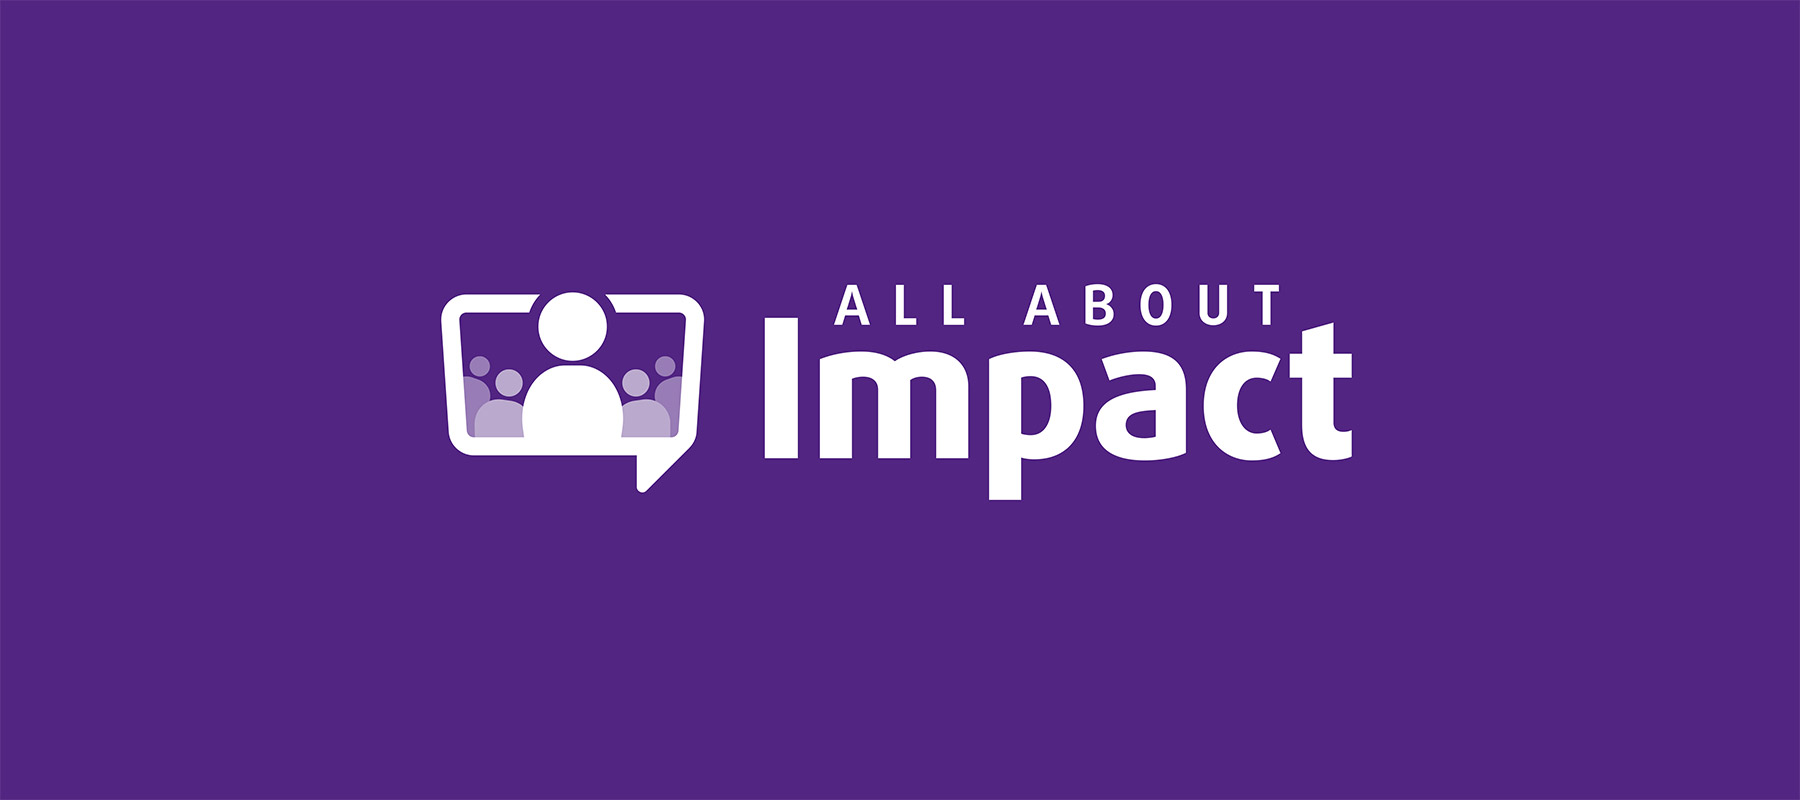 papaya-studio-all-about-impact-logo-2